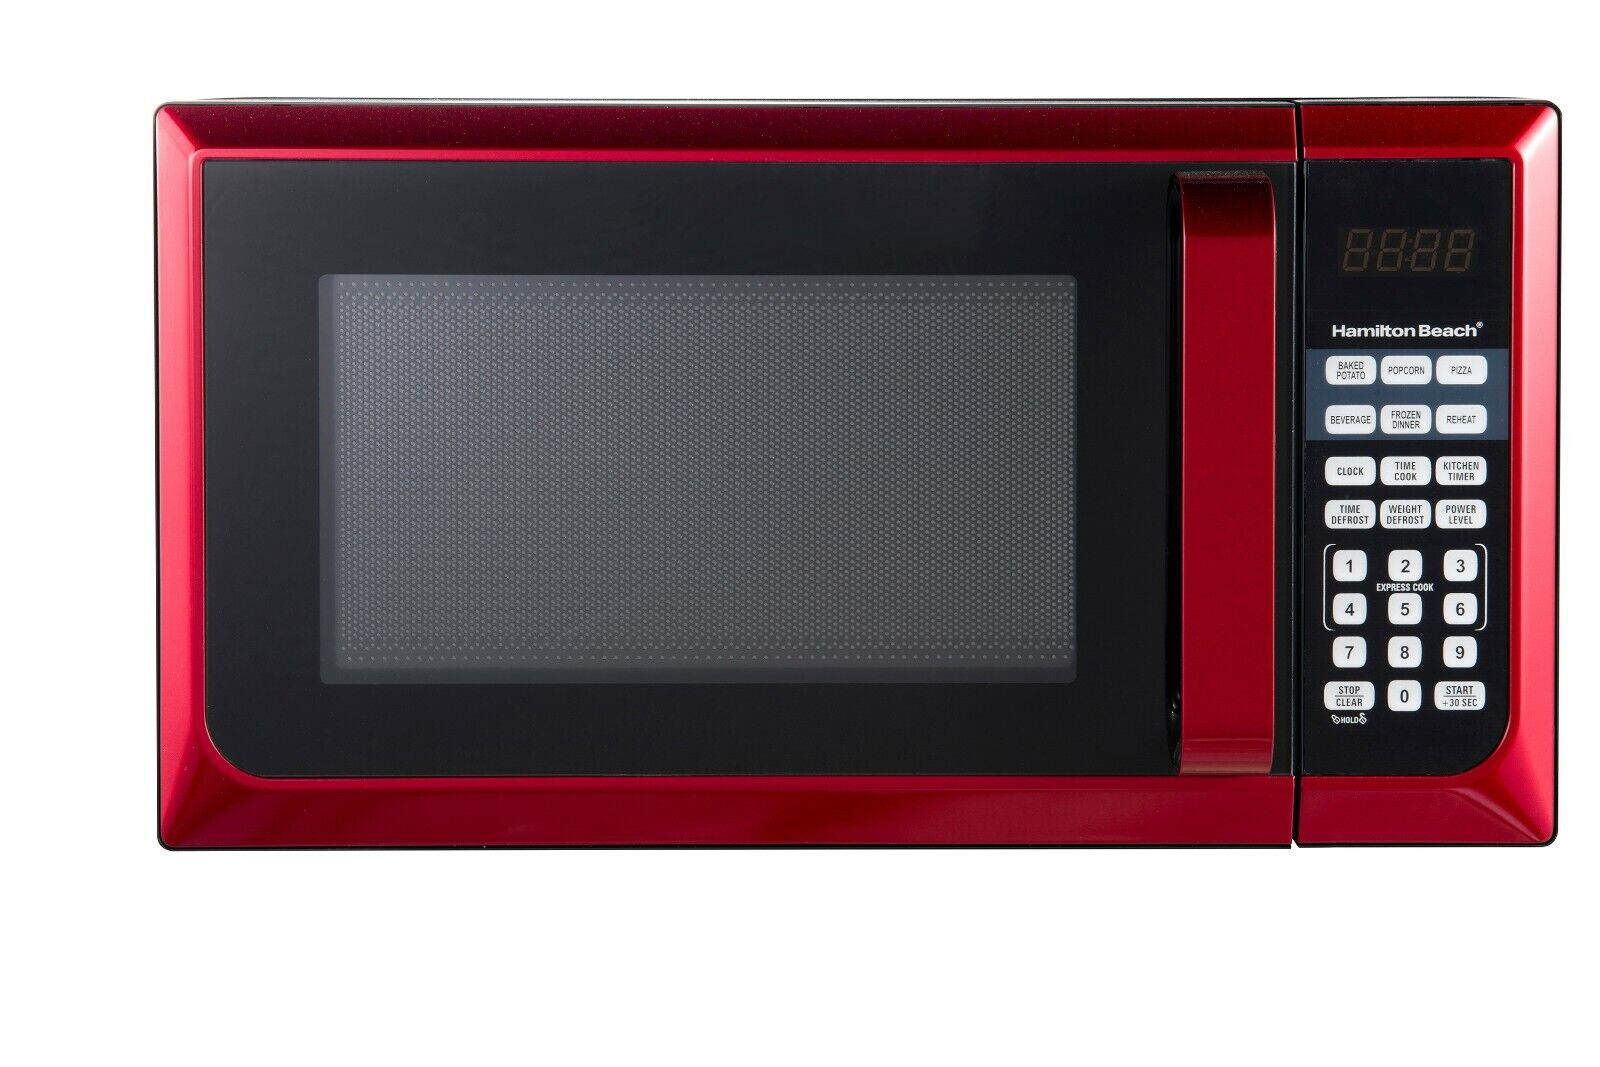 Countertop Microwave Stainless Steel Home Office LED Oven 900W 0.9 Cu Ft. RED - $78.98